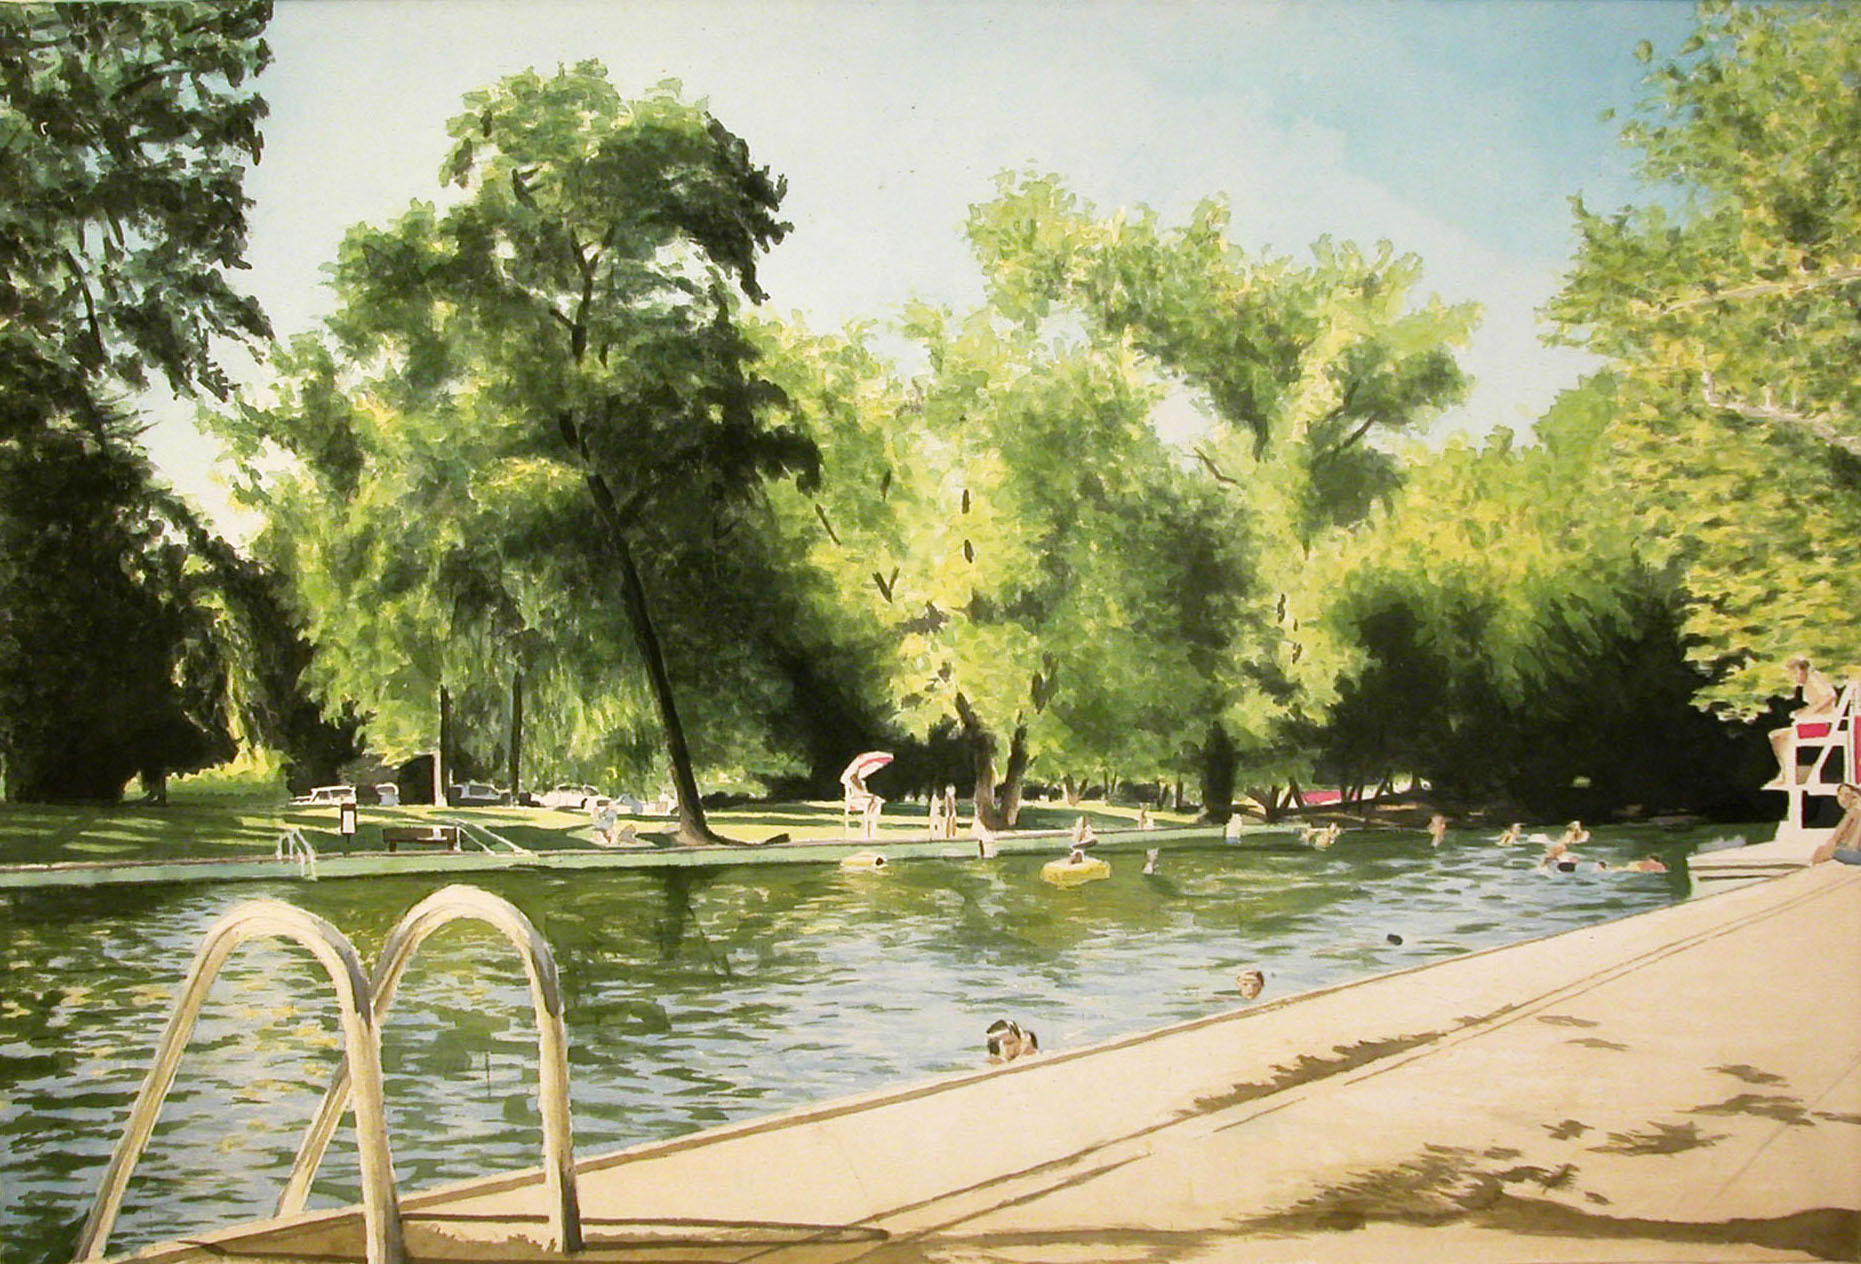 Sycamore Pool, 2002, acrylic on canvas, 36 x 44 in.